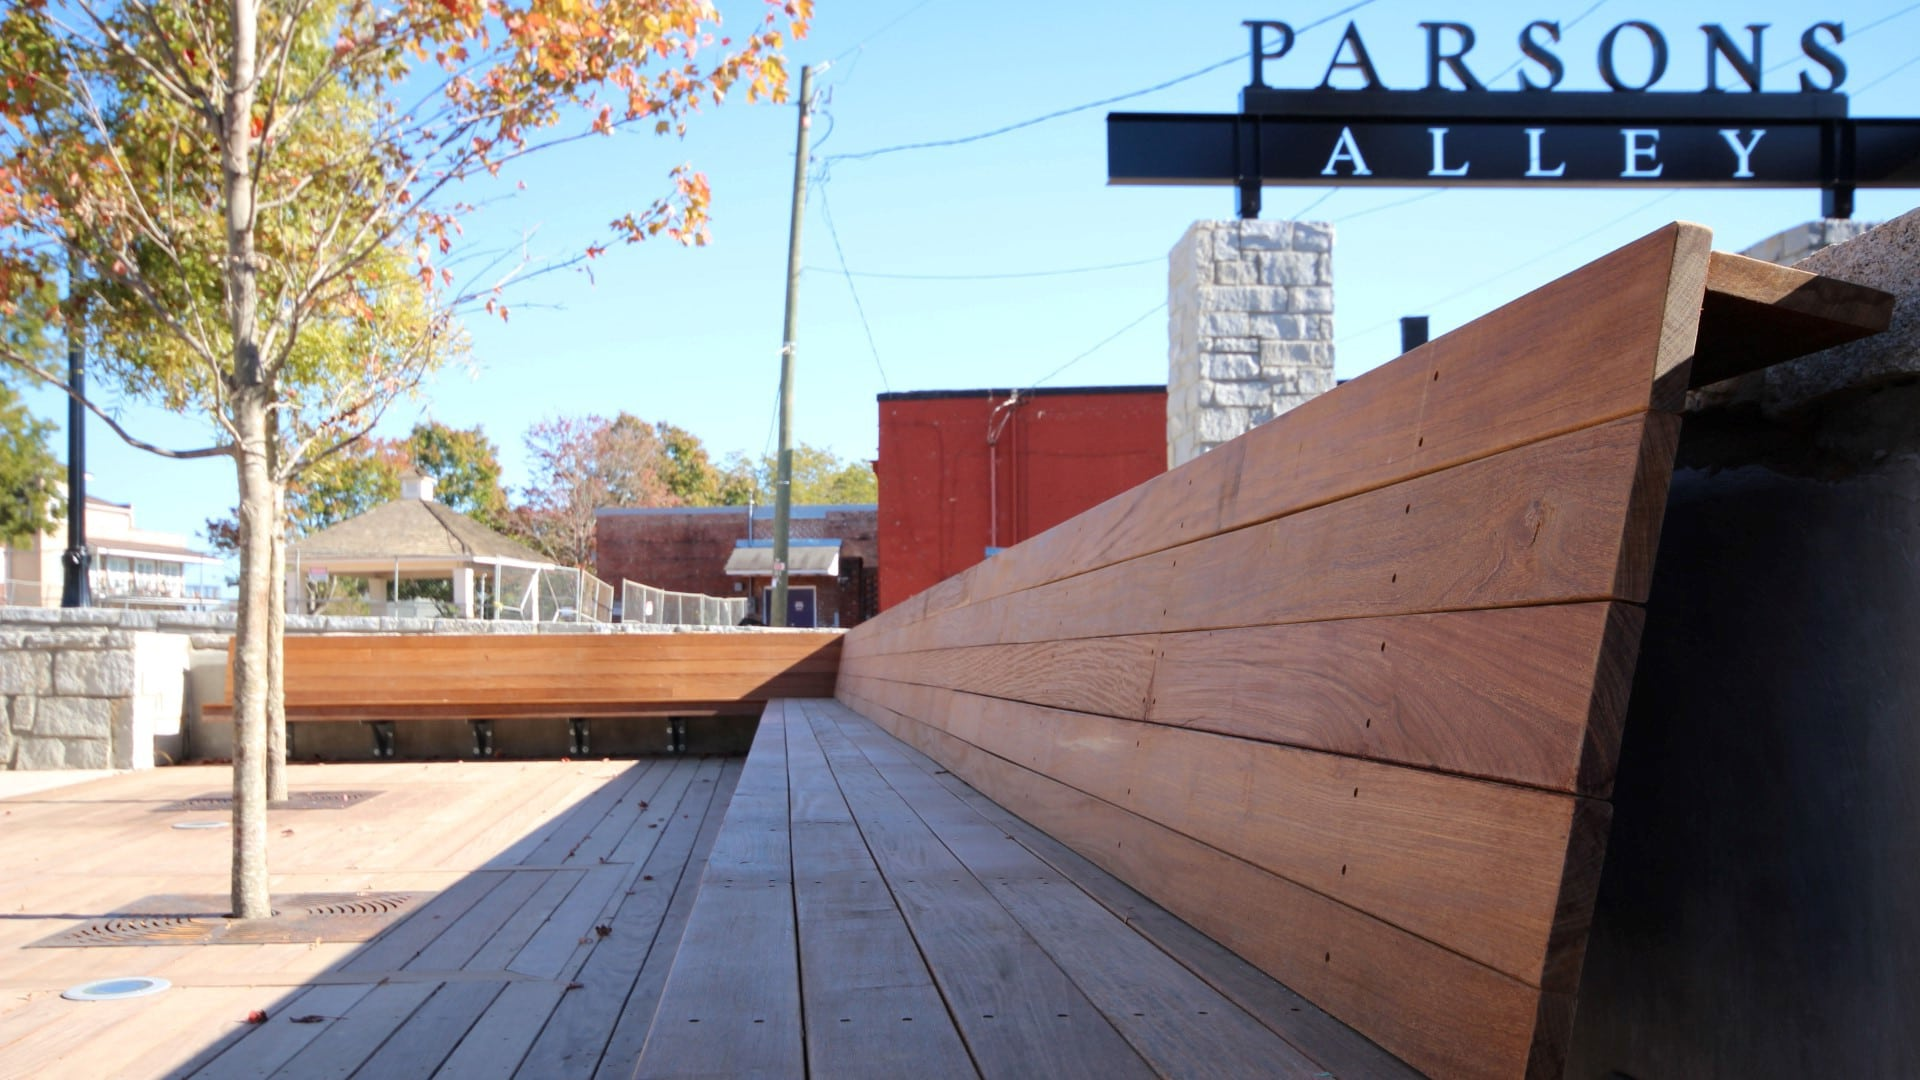 Place Based Branding Parsons Alley Signage environmental graphics